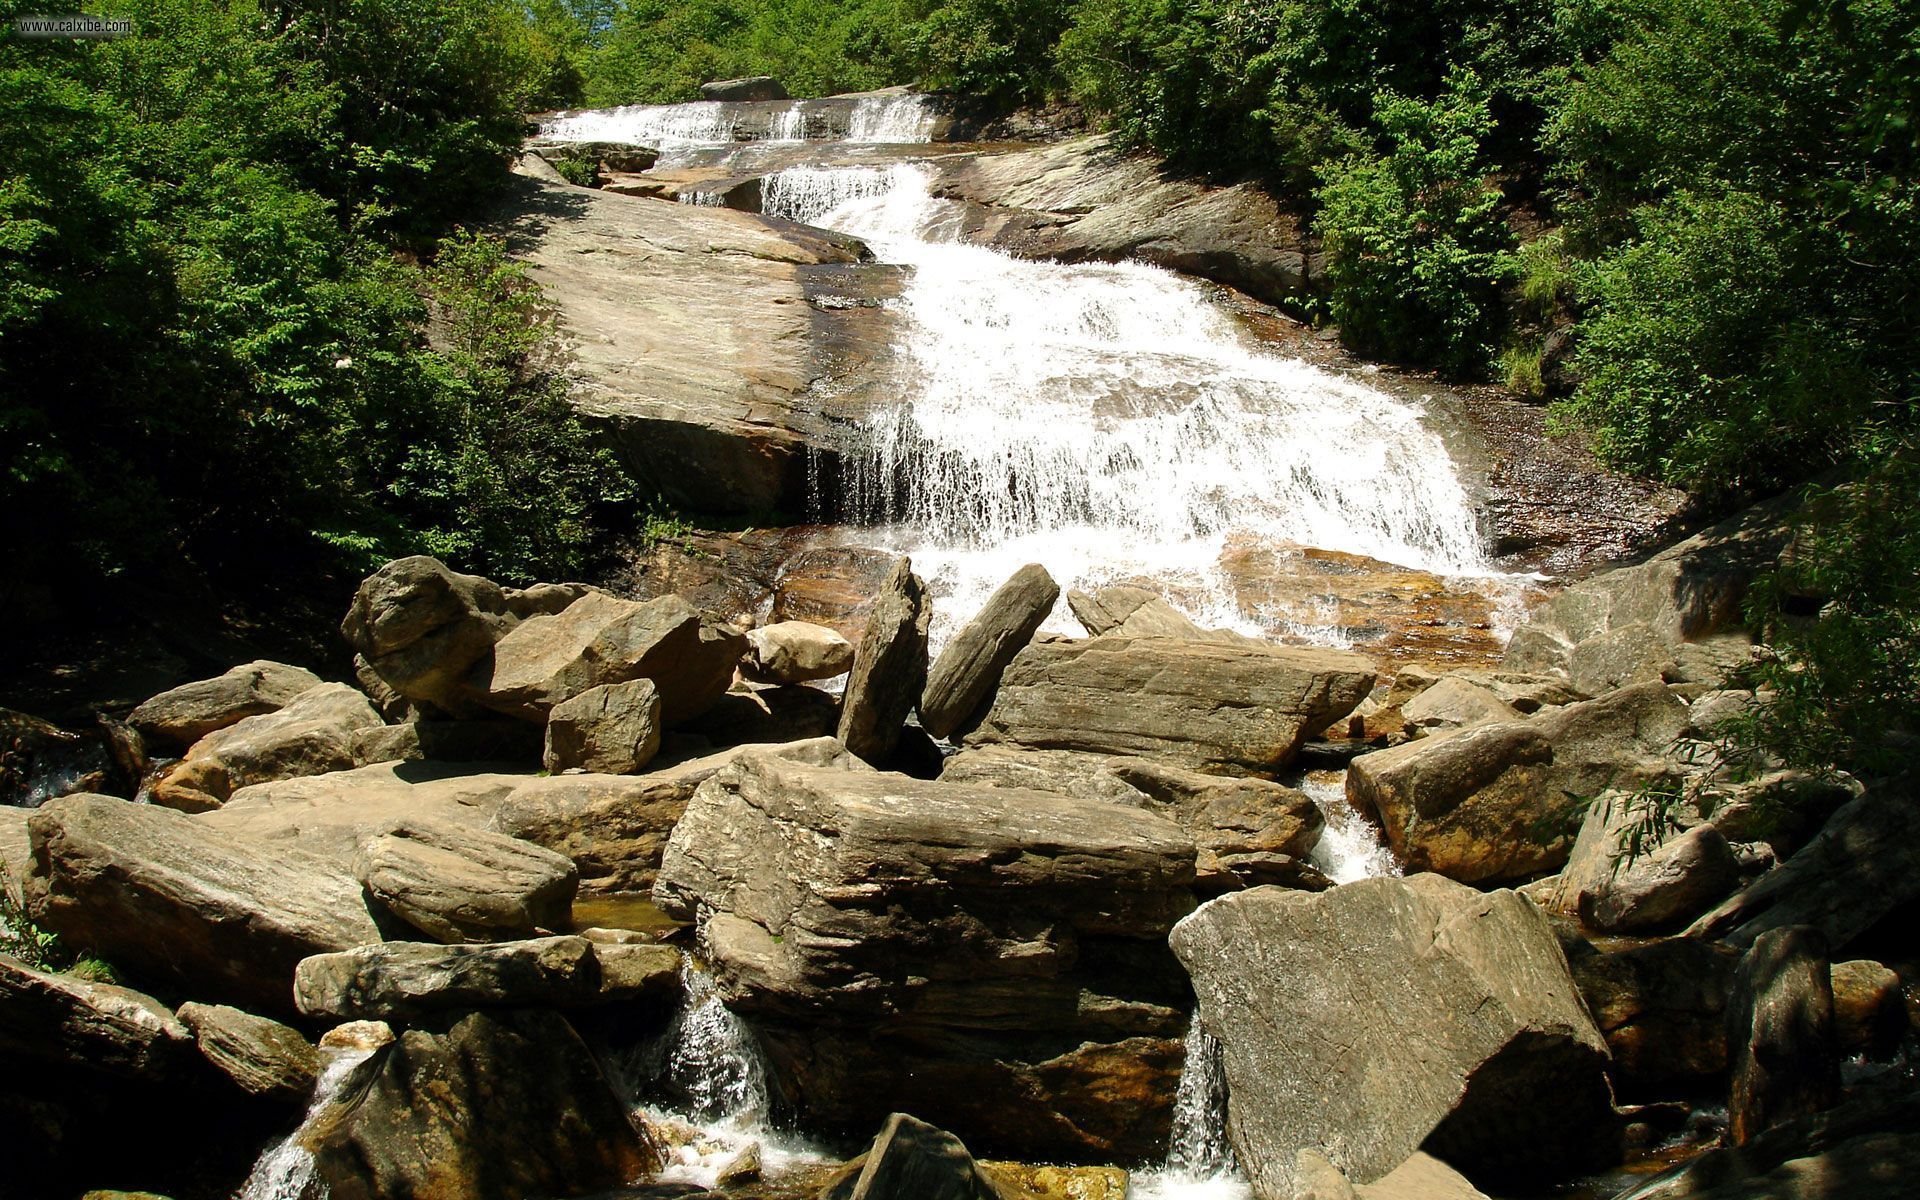 Nature: Waterfall on rocks, picture nr. 22230